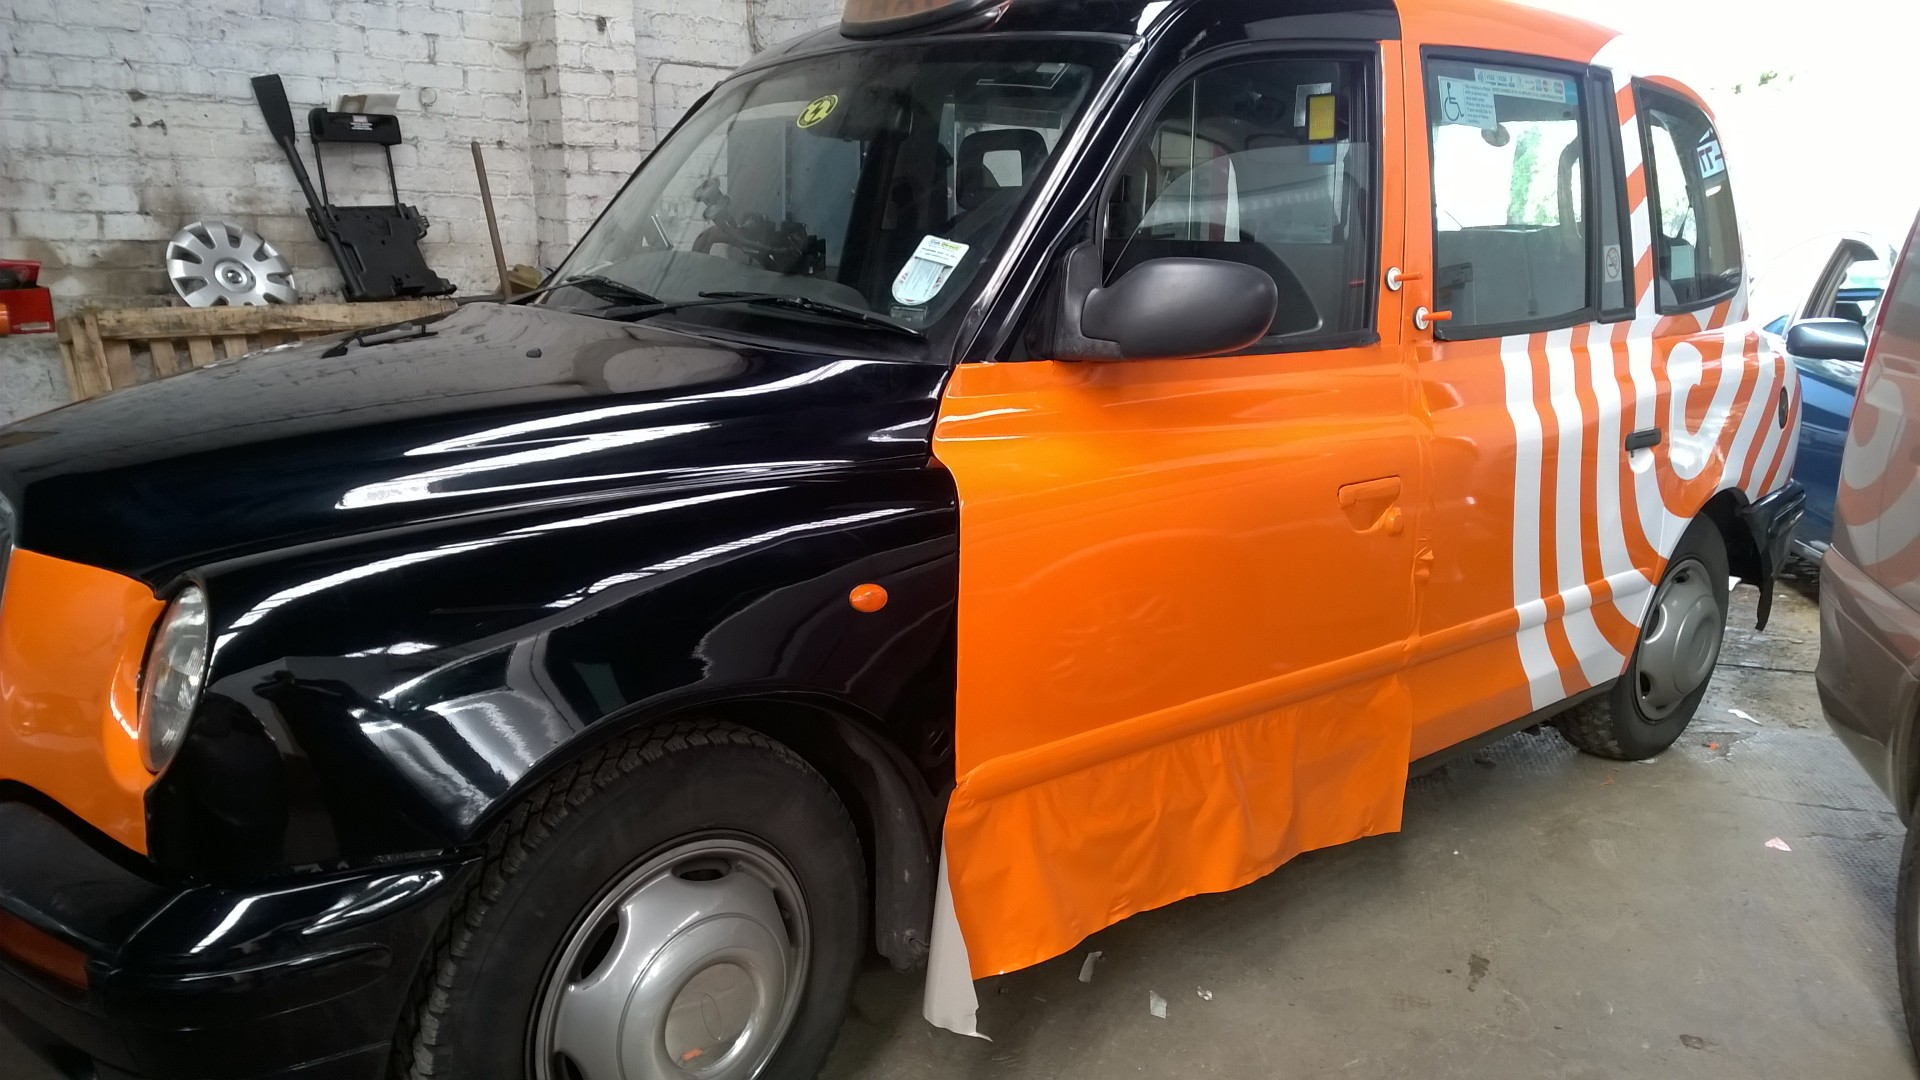 Taxi Wrap mid way through